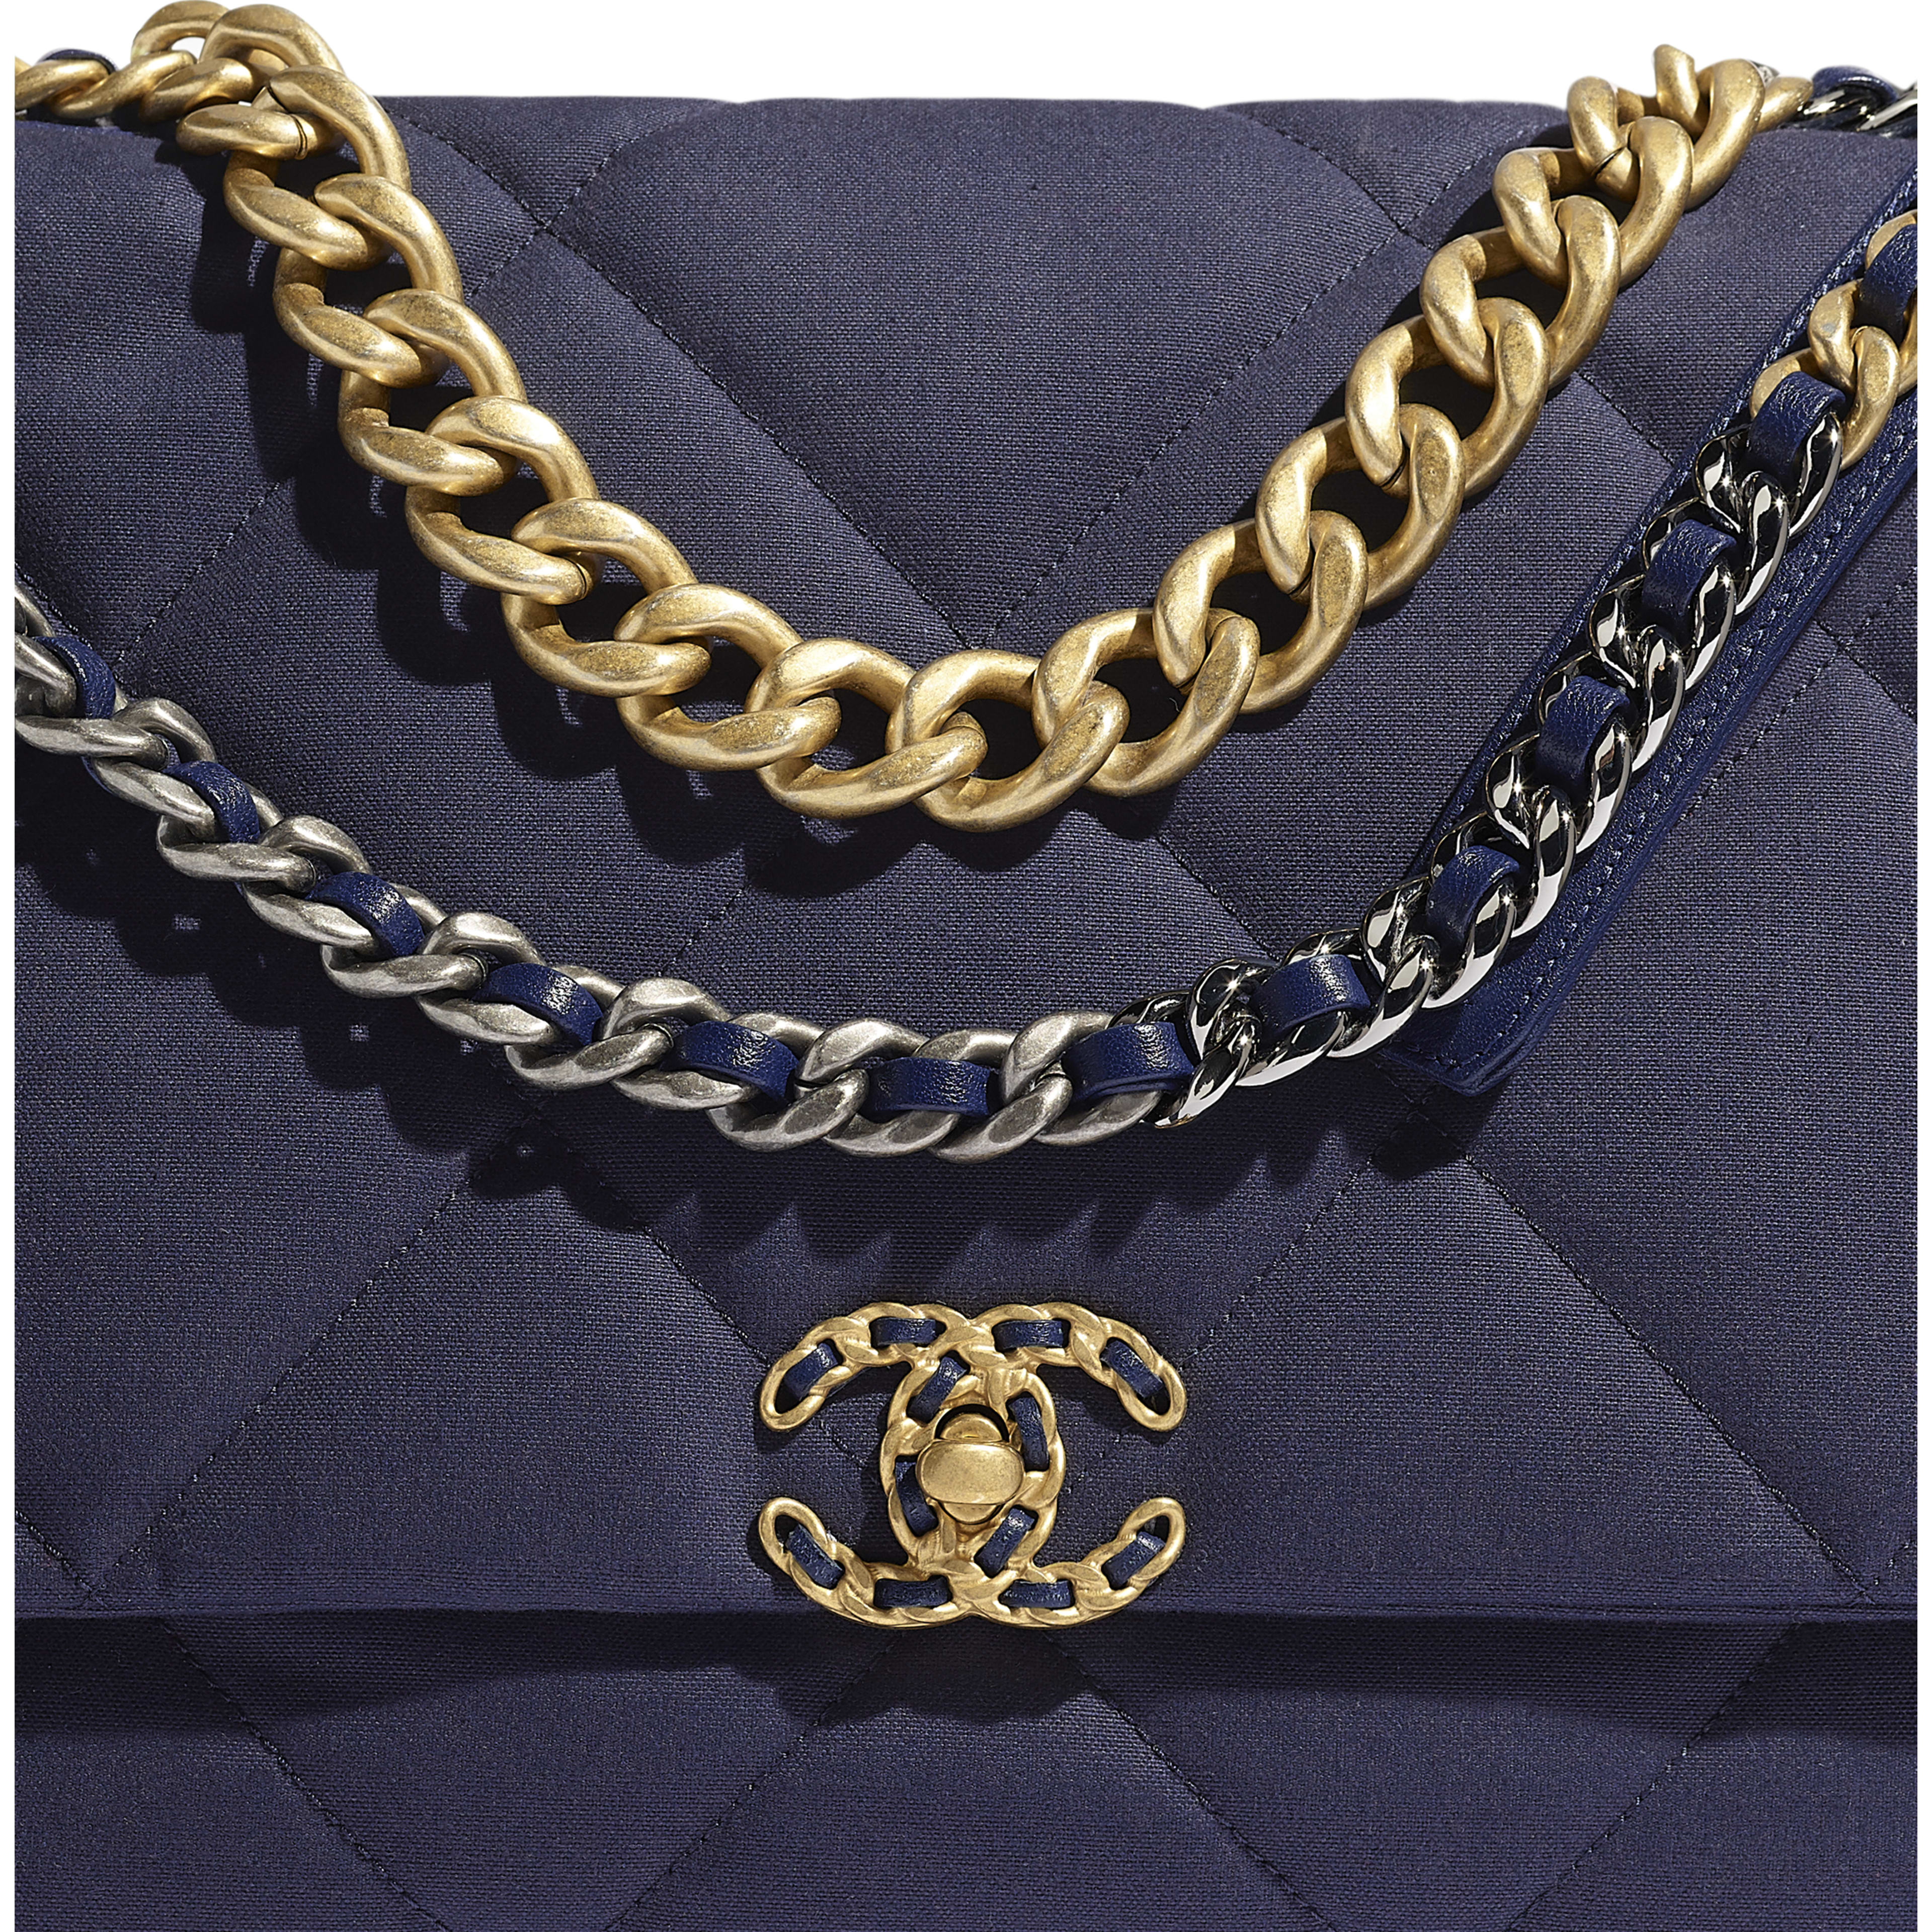 CHANEL 19 Maxi Flap Bag - Navy Blue - Cotton Canvas, Calfskin, Gold-Tone, Silver-Tone & Ruthenium-Finish Metal - Extra view - see full sized version